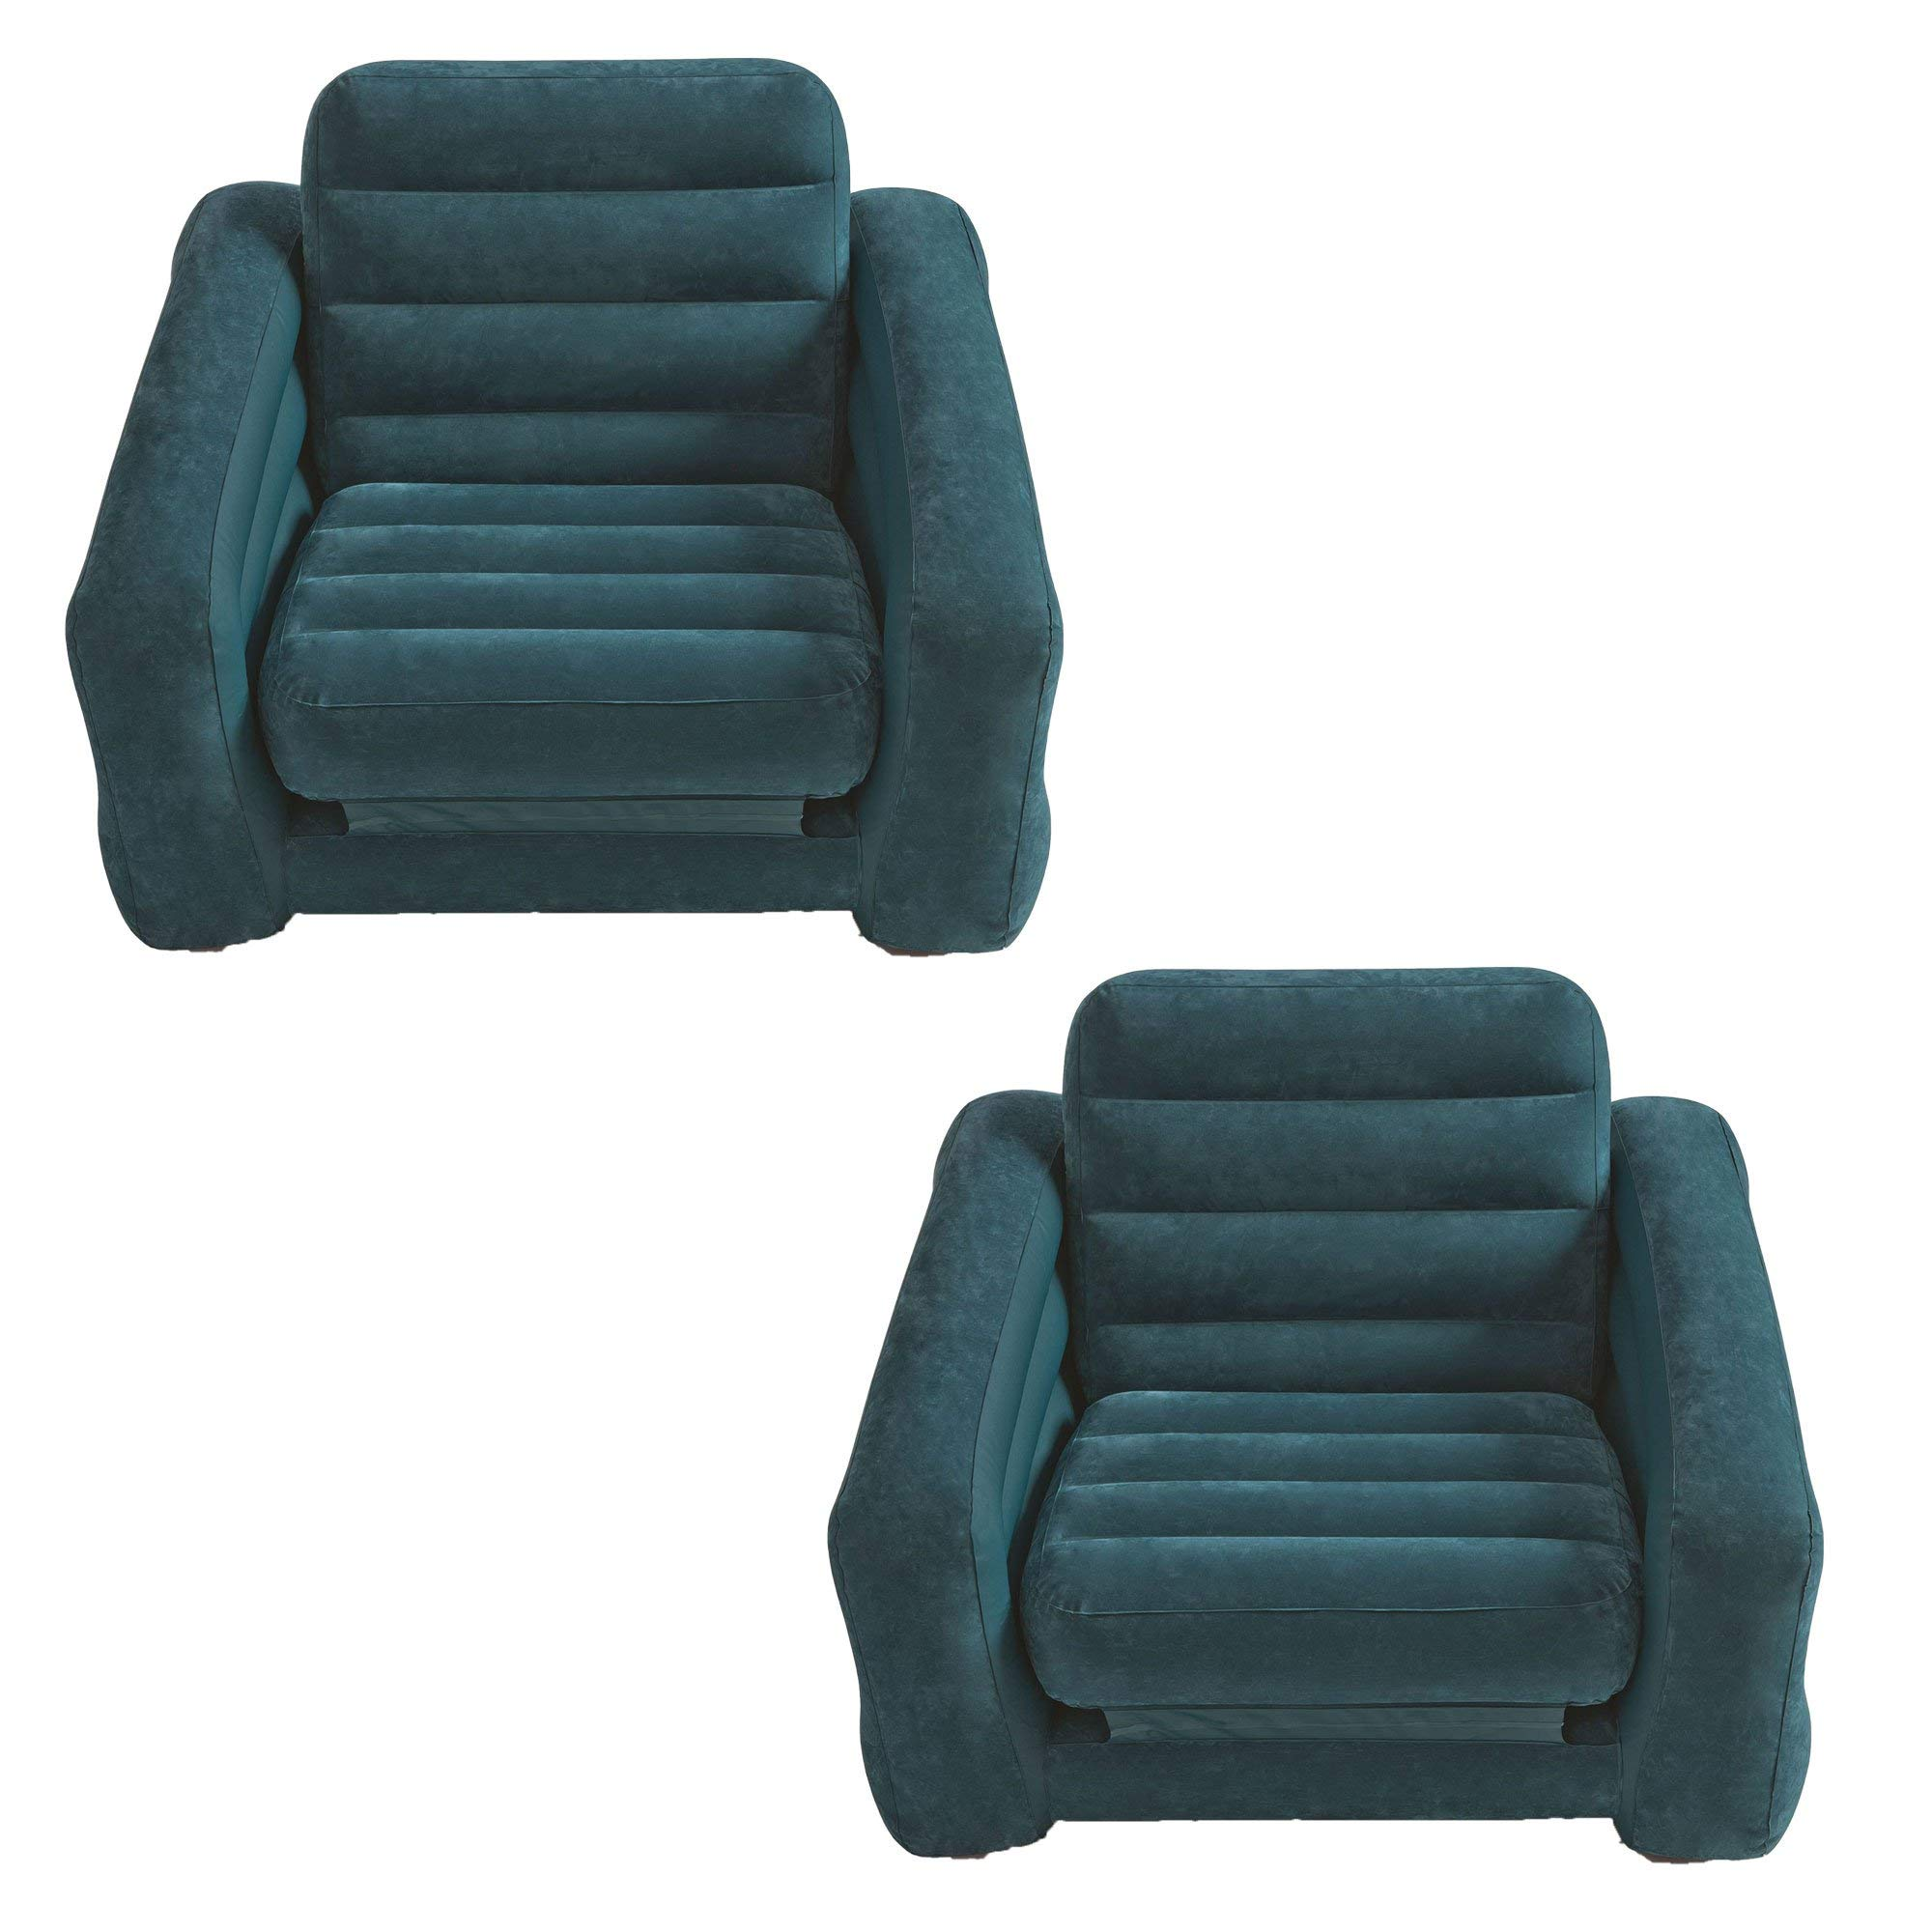 Intex Inflatable Pull Out Chair and Twin Bed Air Bed Mattress Sleeper (2 Pack)